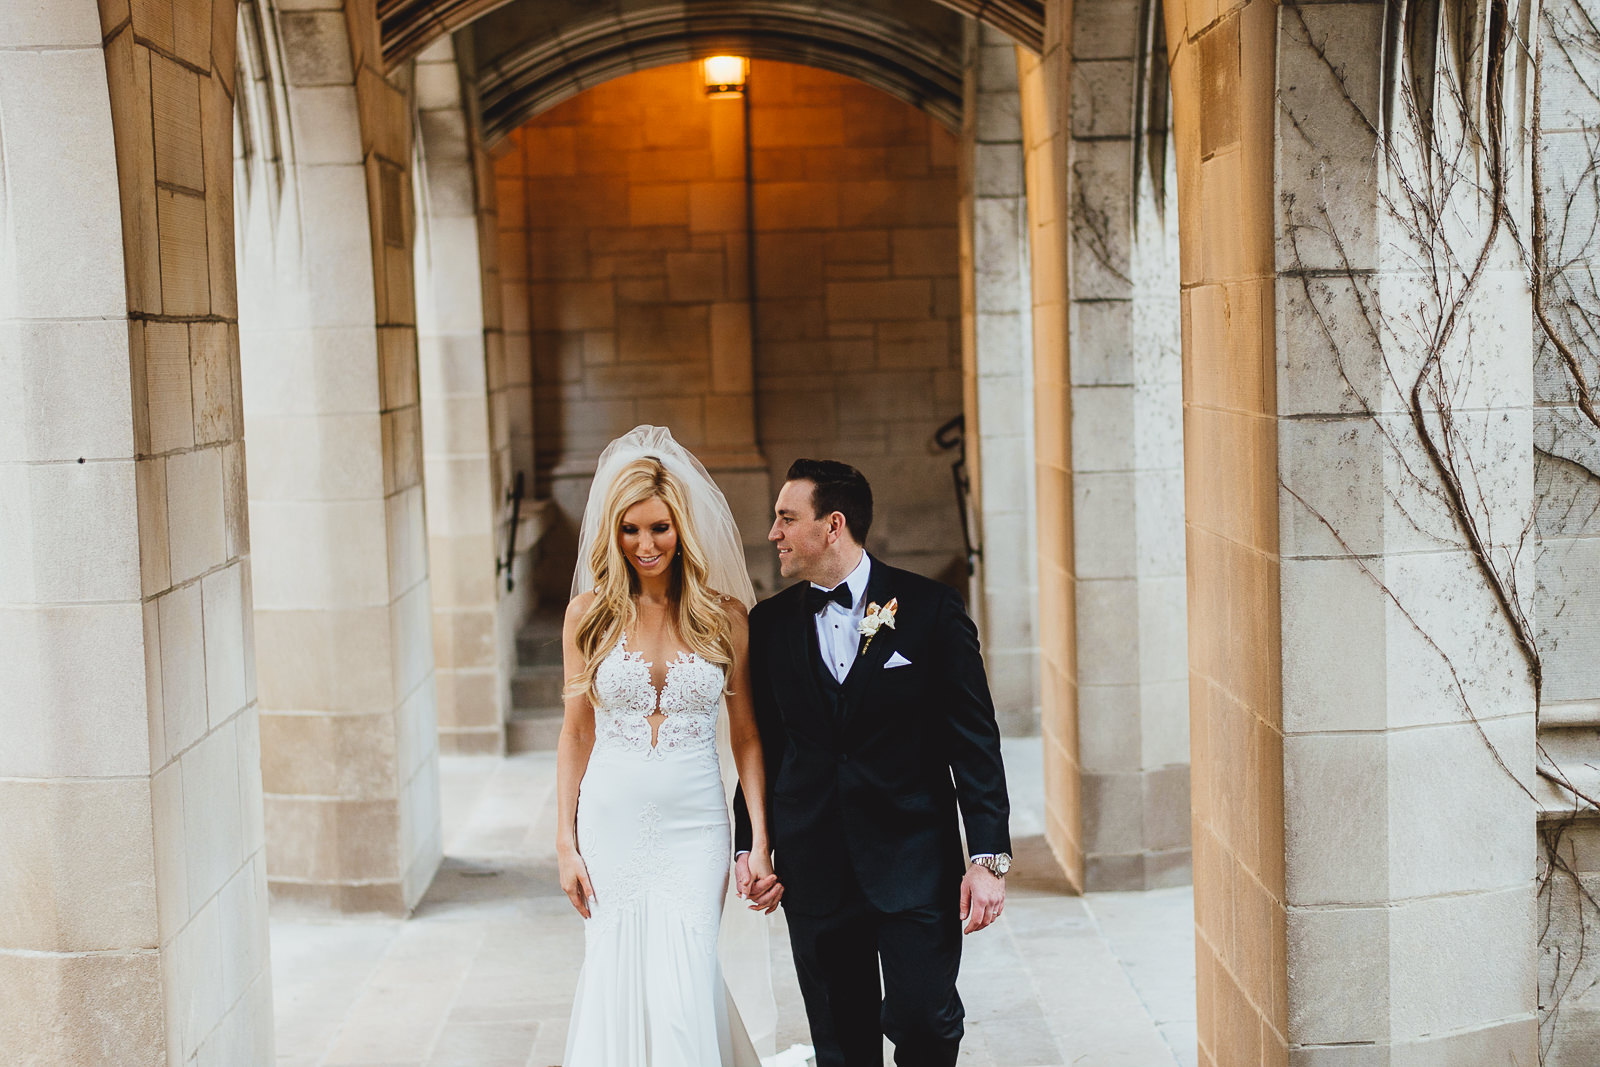 39 chicago wedding photographer - Kayla + Terry // Drake Hotel Chicago Wedding Photos